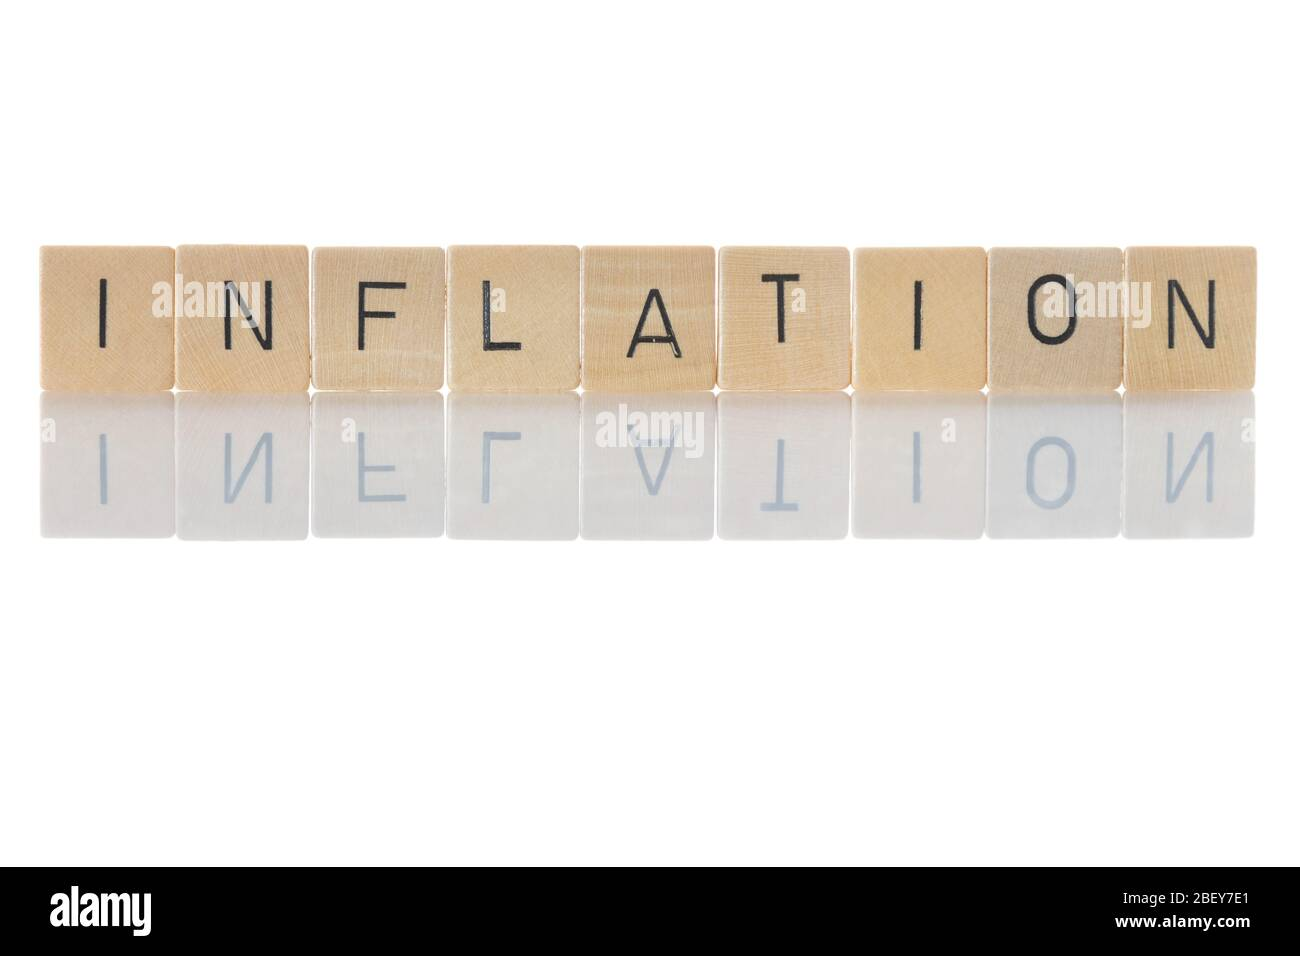 """Inflation, Monetary devaluation due to sustained increases in the price level of goods and services.""""Inflation"""" as a word isolated on white background Stock Photo"""